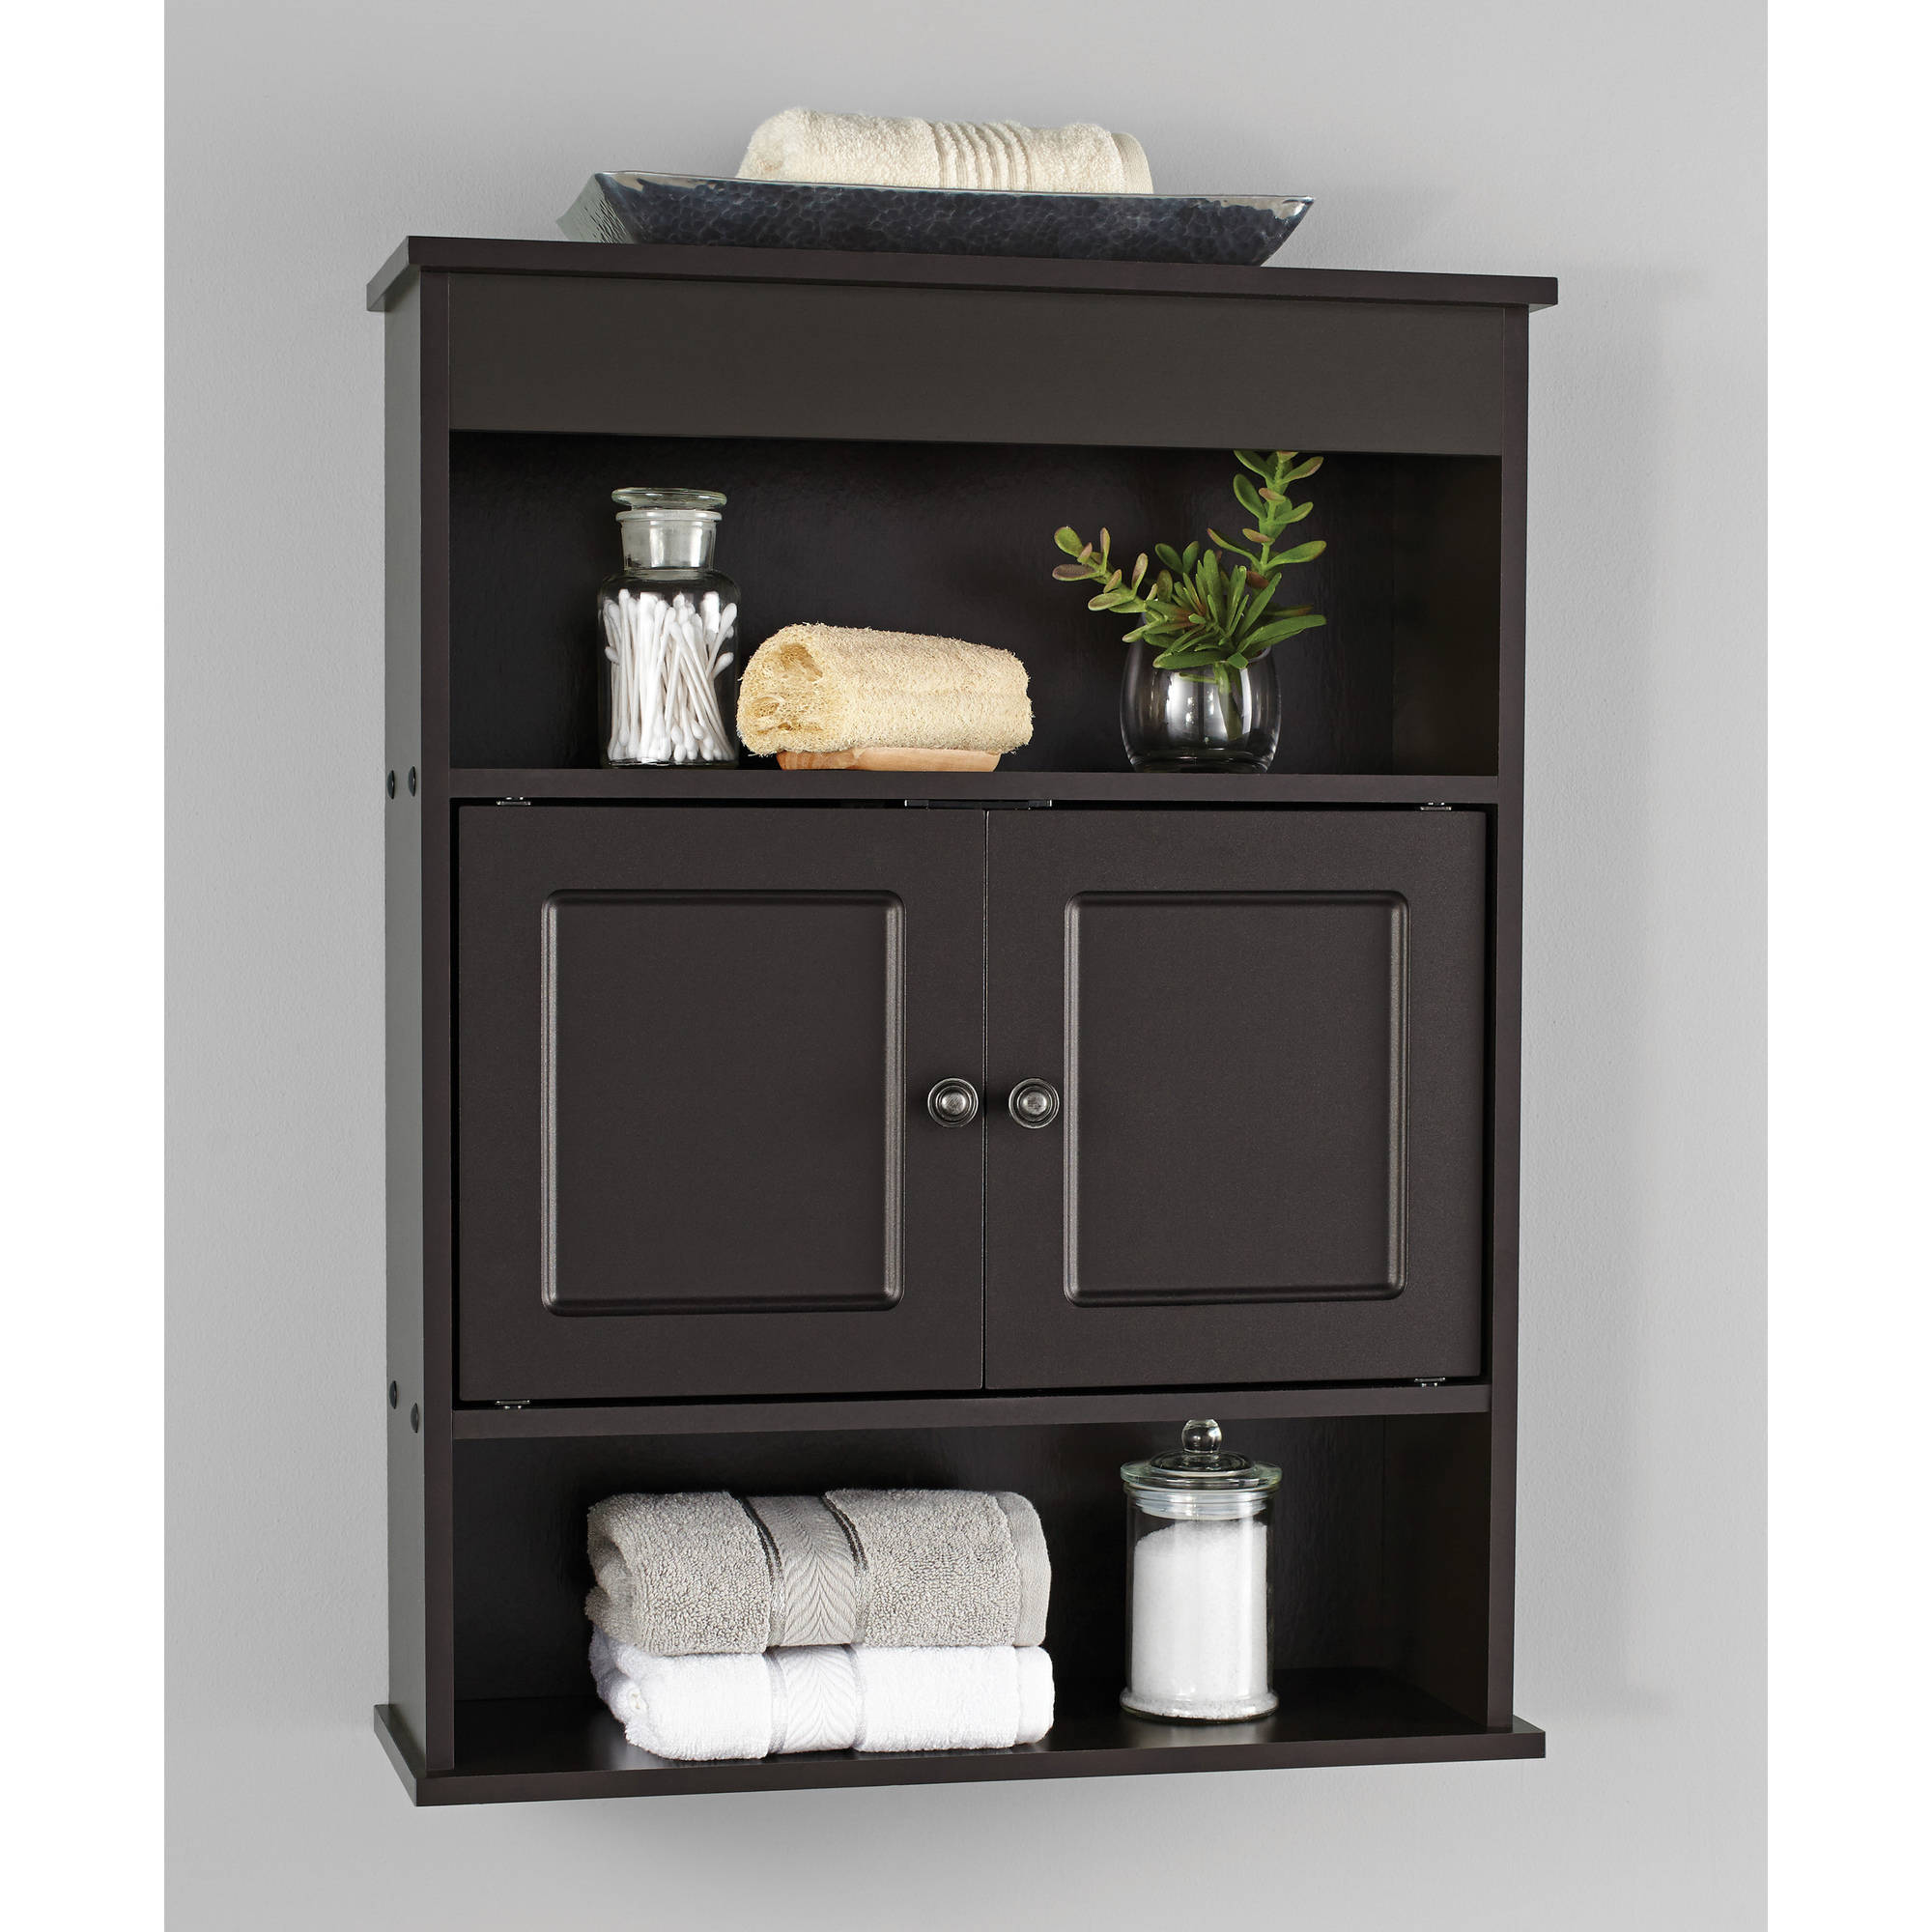 Bathroom Cabinets Images bathroom cabinets - walmart